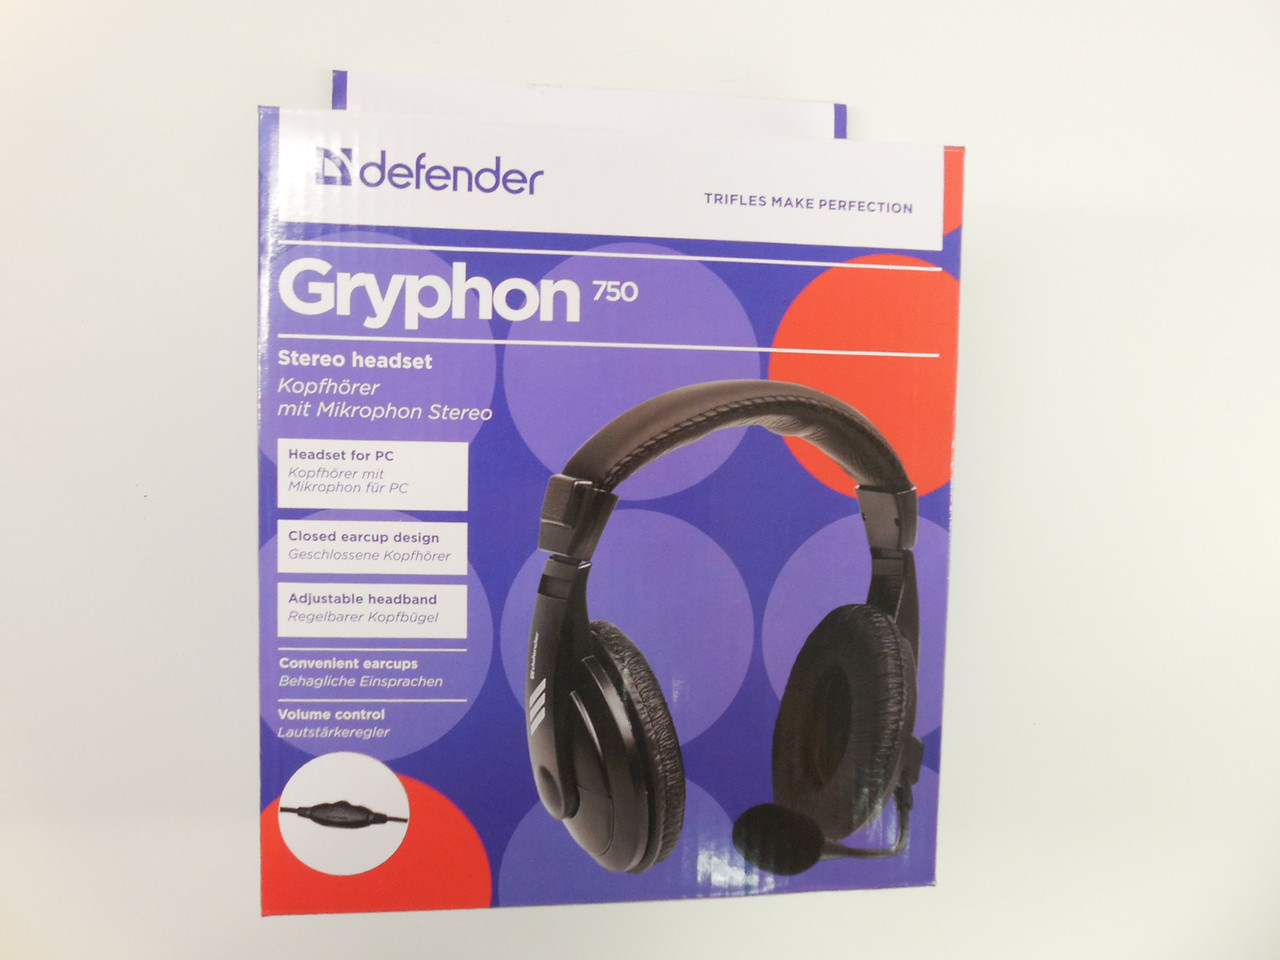 Наушники DEFENDER Gryphon HN-750 Black